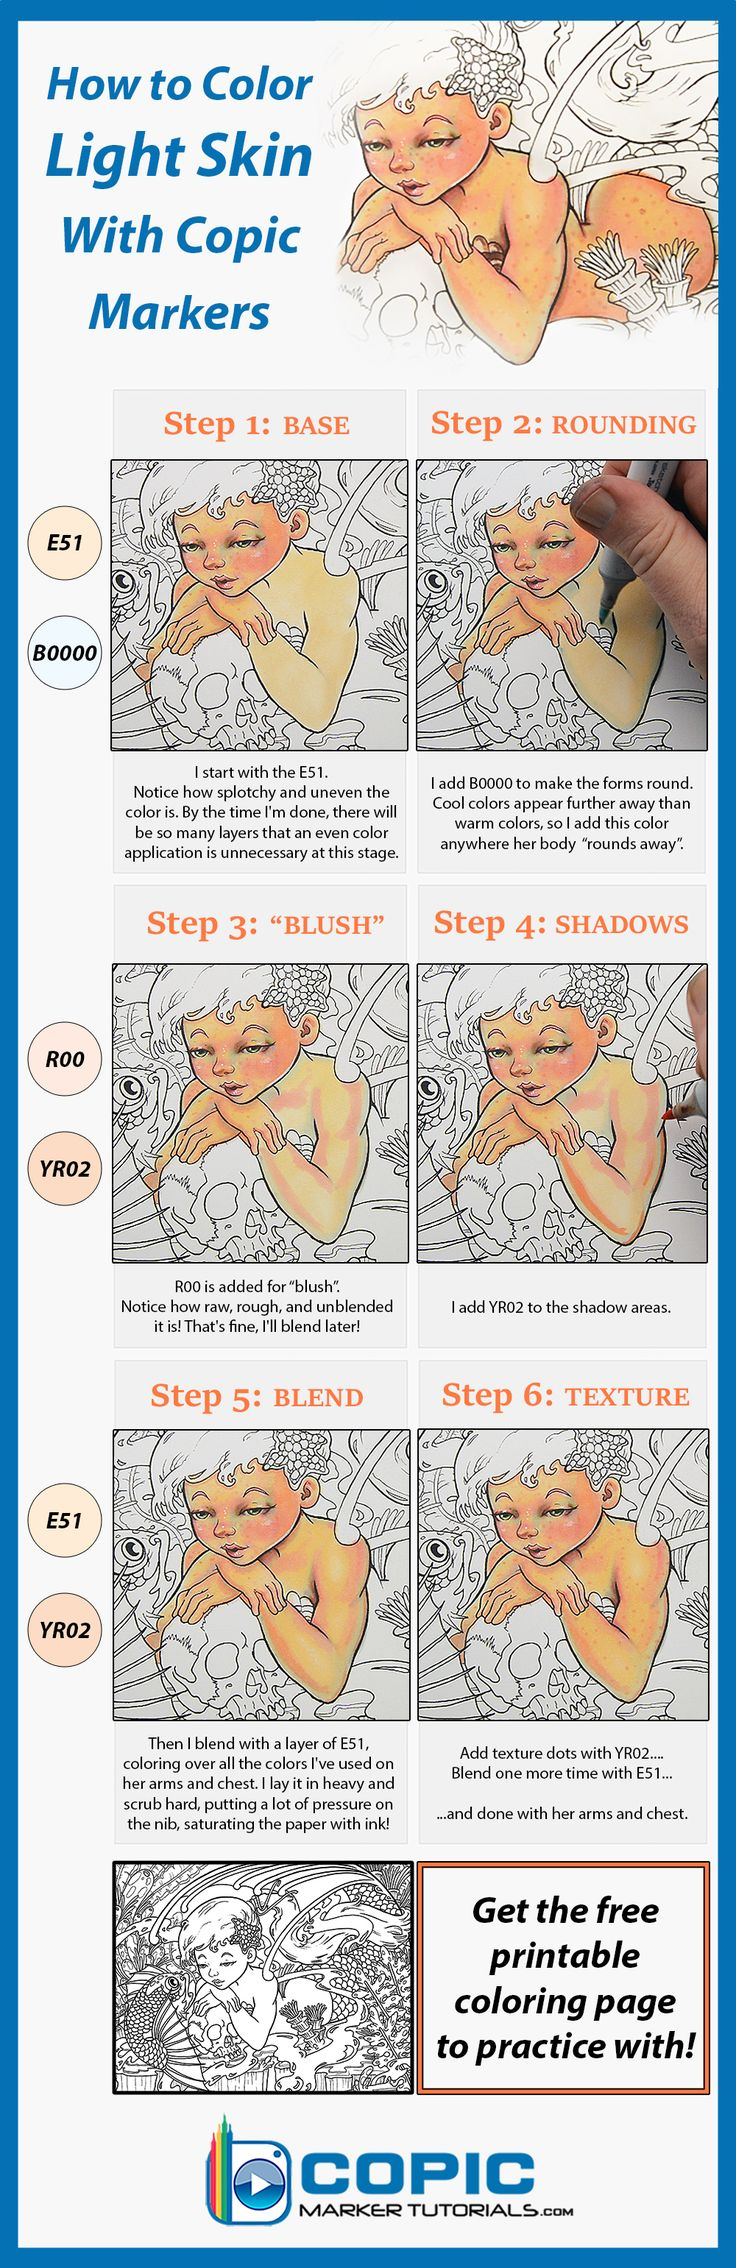 How to color light skin tones with Copic markers. Get the printable coloring…